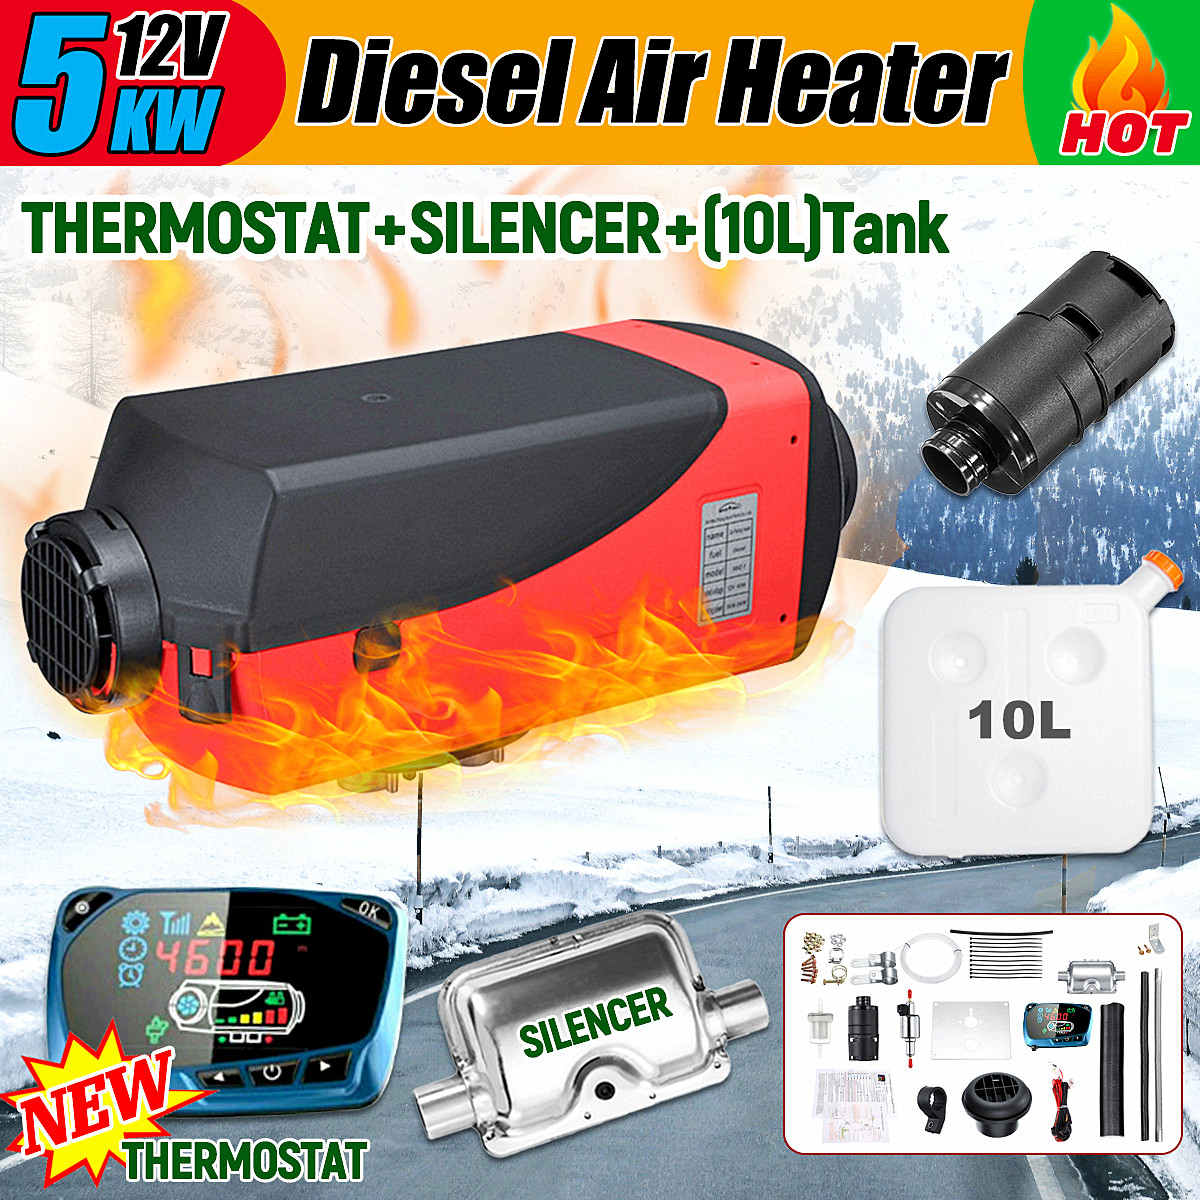 5KW 12V Air Diesel Fuel Heater Car Parking Heater Electric Heating Cooling LCD Monitor Thermostat for RV Boat 2 Holes 24v 150w 50x250mm silicone heater pad car fuel filter diesel heater 65 deg c with thermostat moldes de silicone electric heating